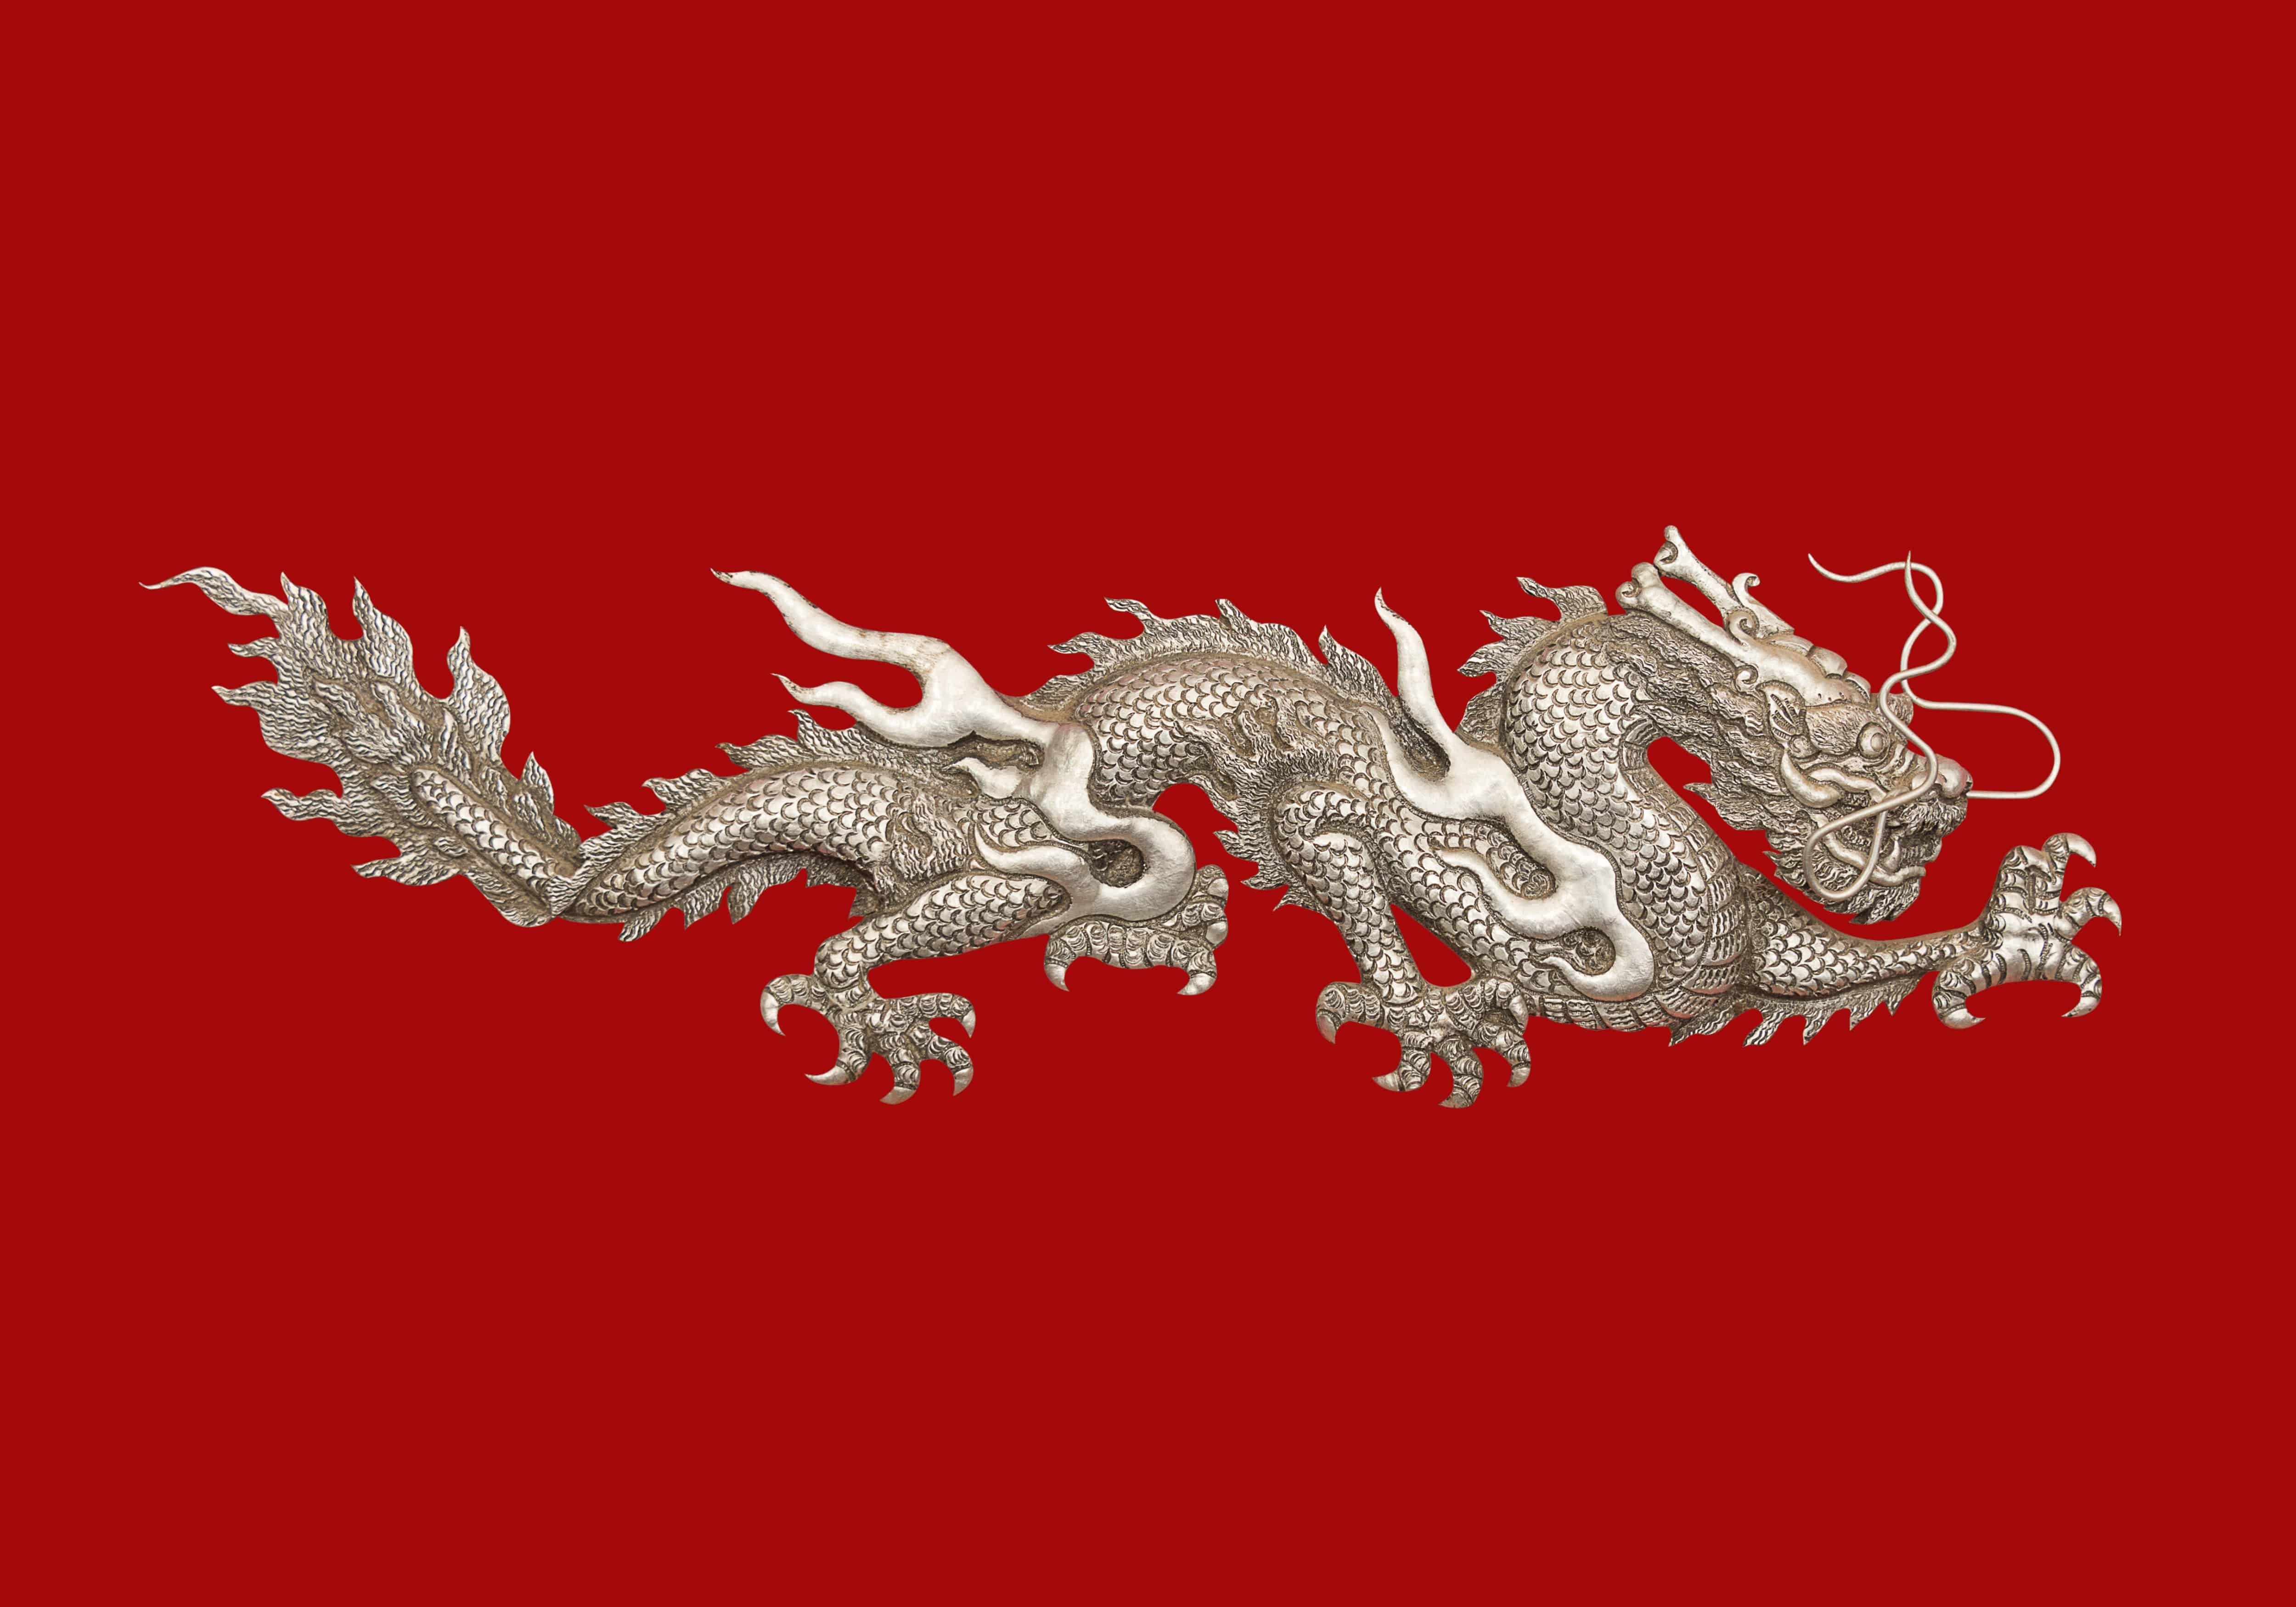 Dragonblood Vulnerabilities Discovered in WPA3 WiFi Standard